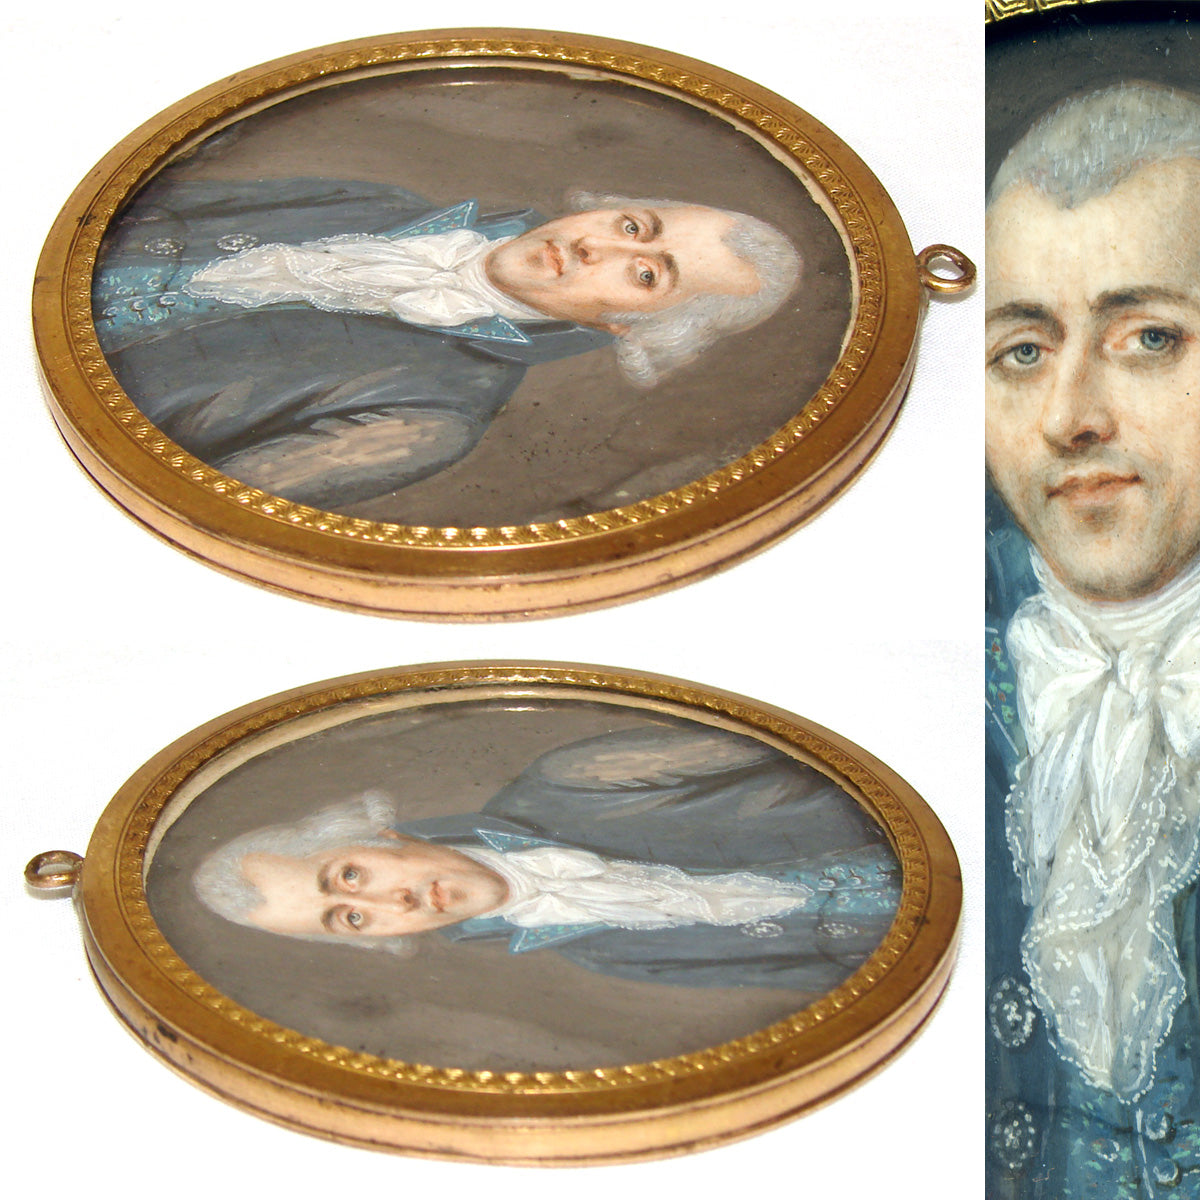 Superb Antique French Revolution Style Portrait Miniature, Gentleman, Powdered Hair